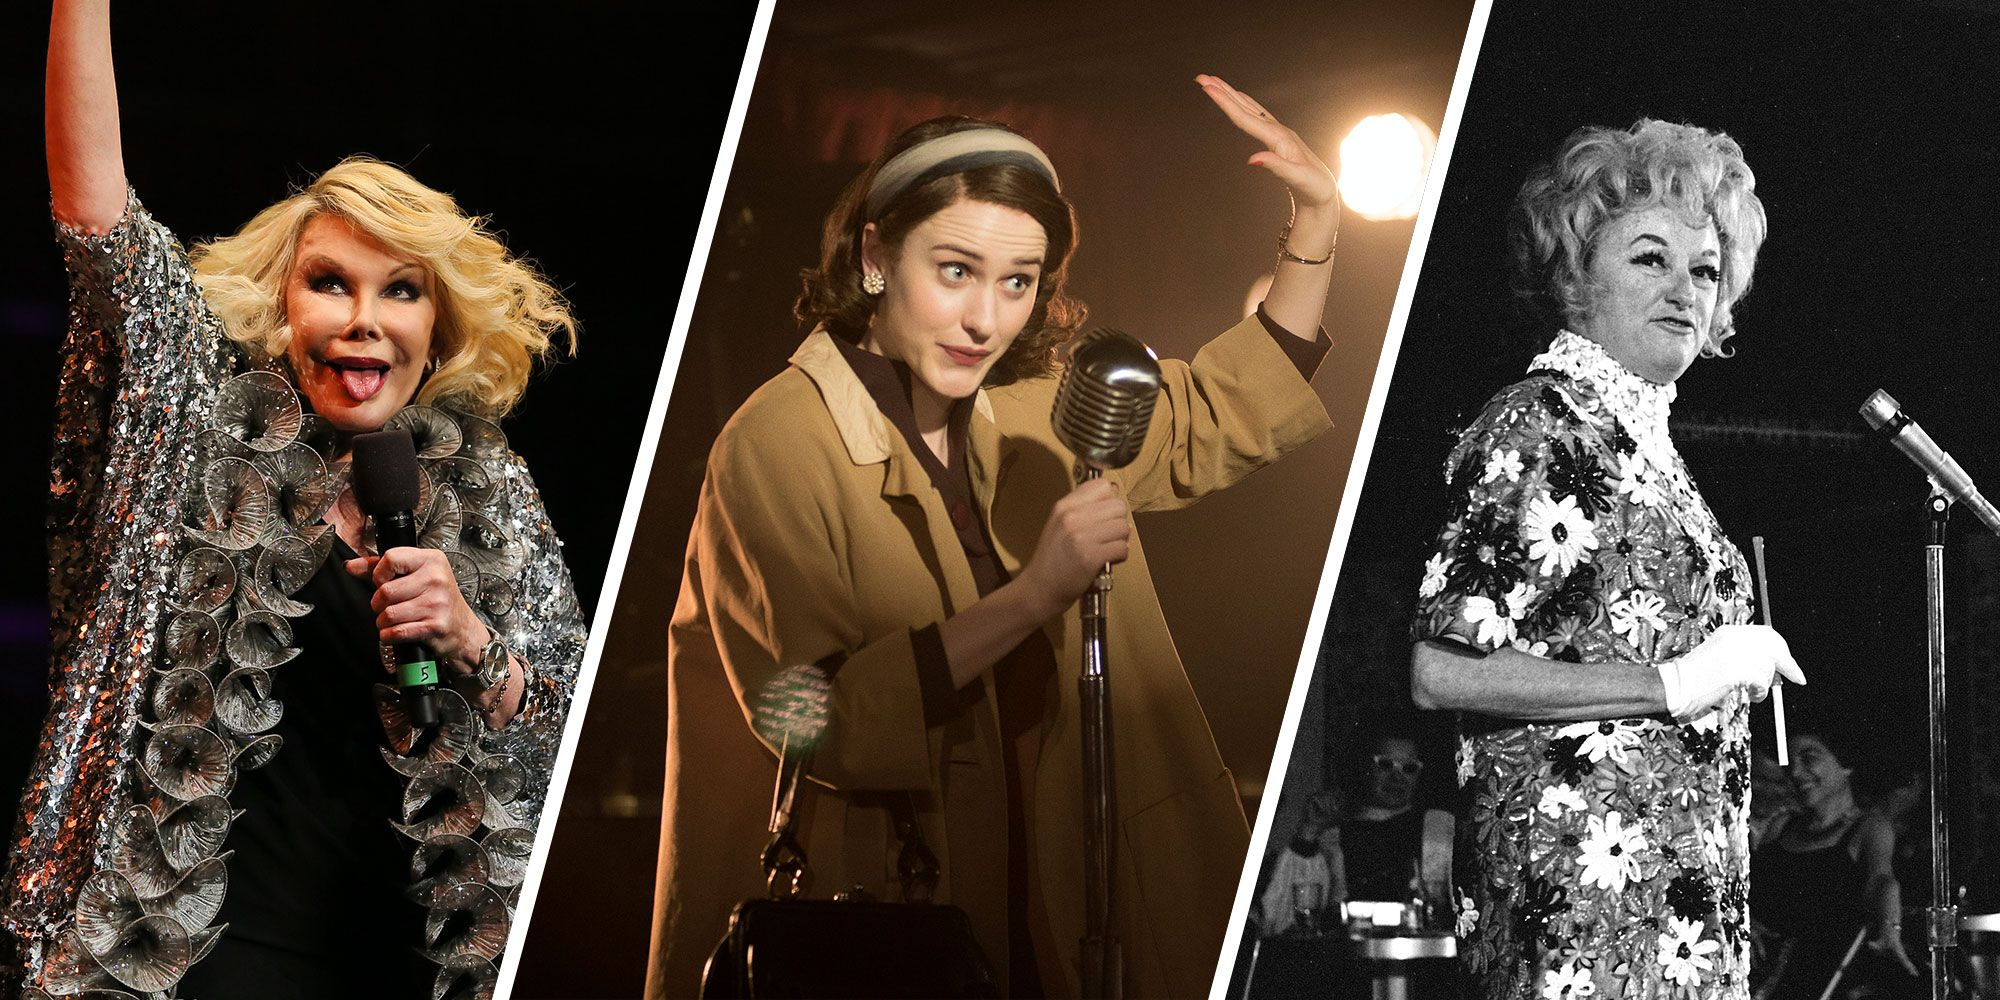 Who Is Midge Maisel Based On Marvelous Mrs Maisel Was Inspired By Joan Rivers Phyllis Diller